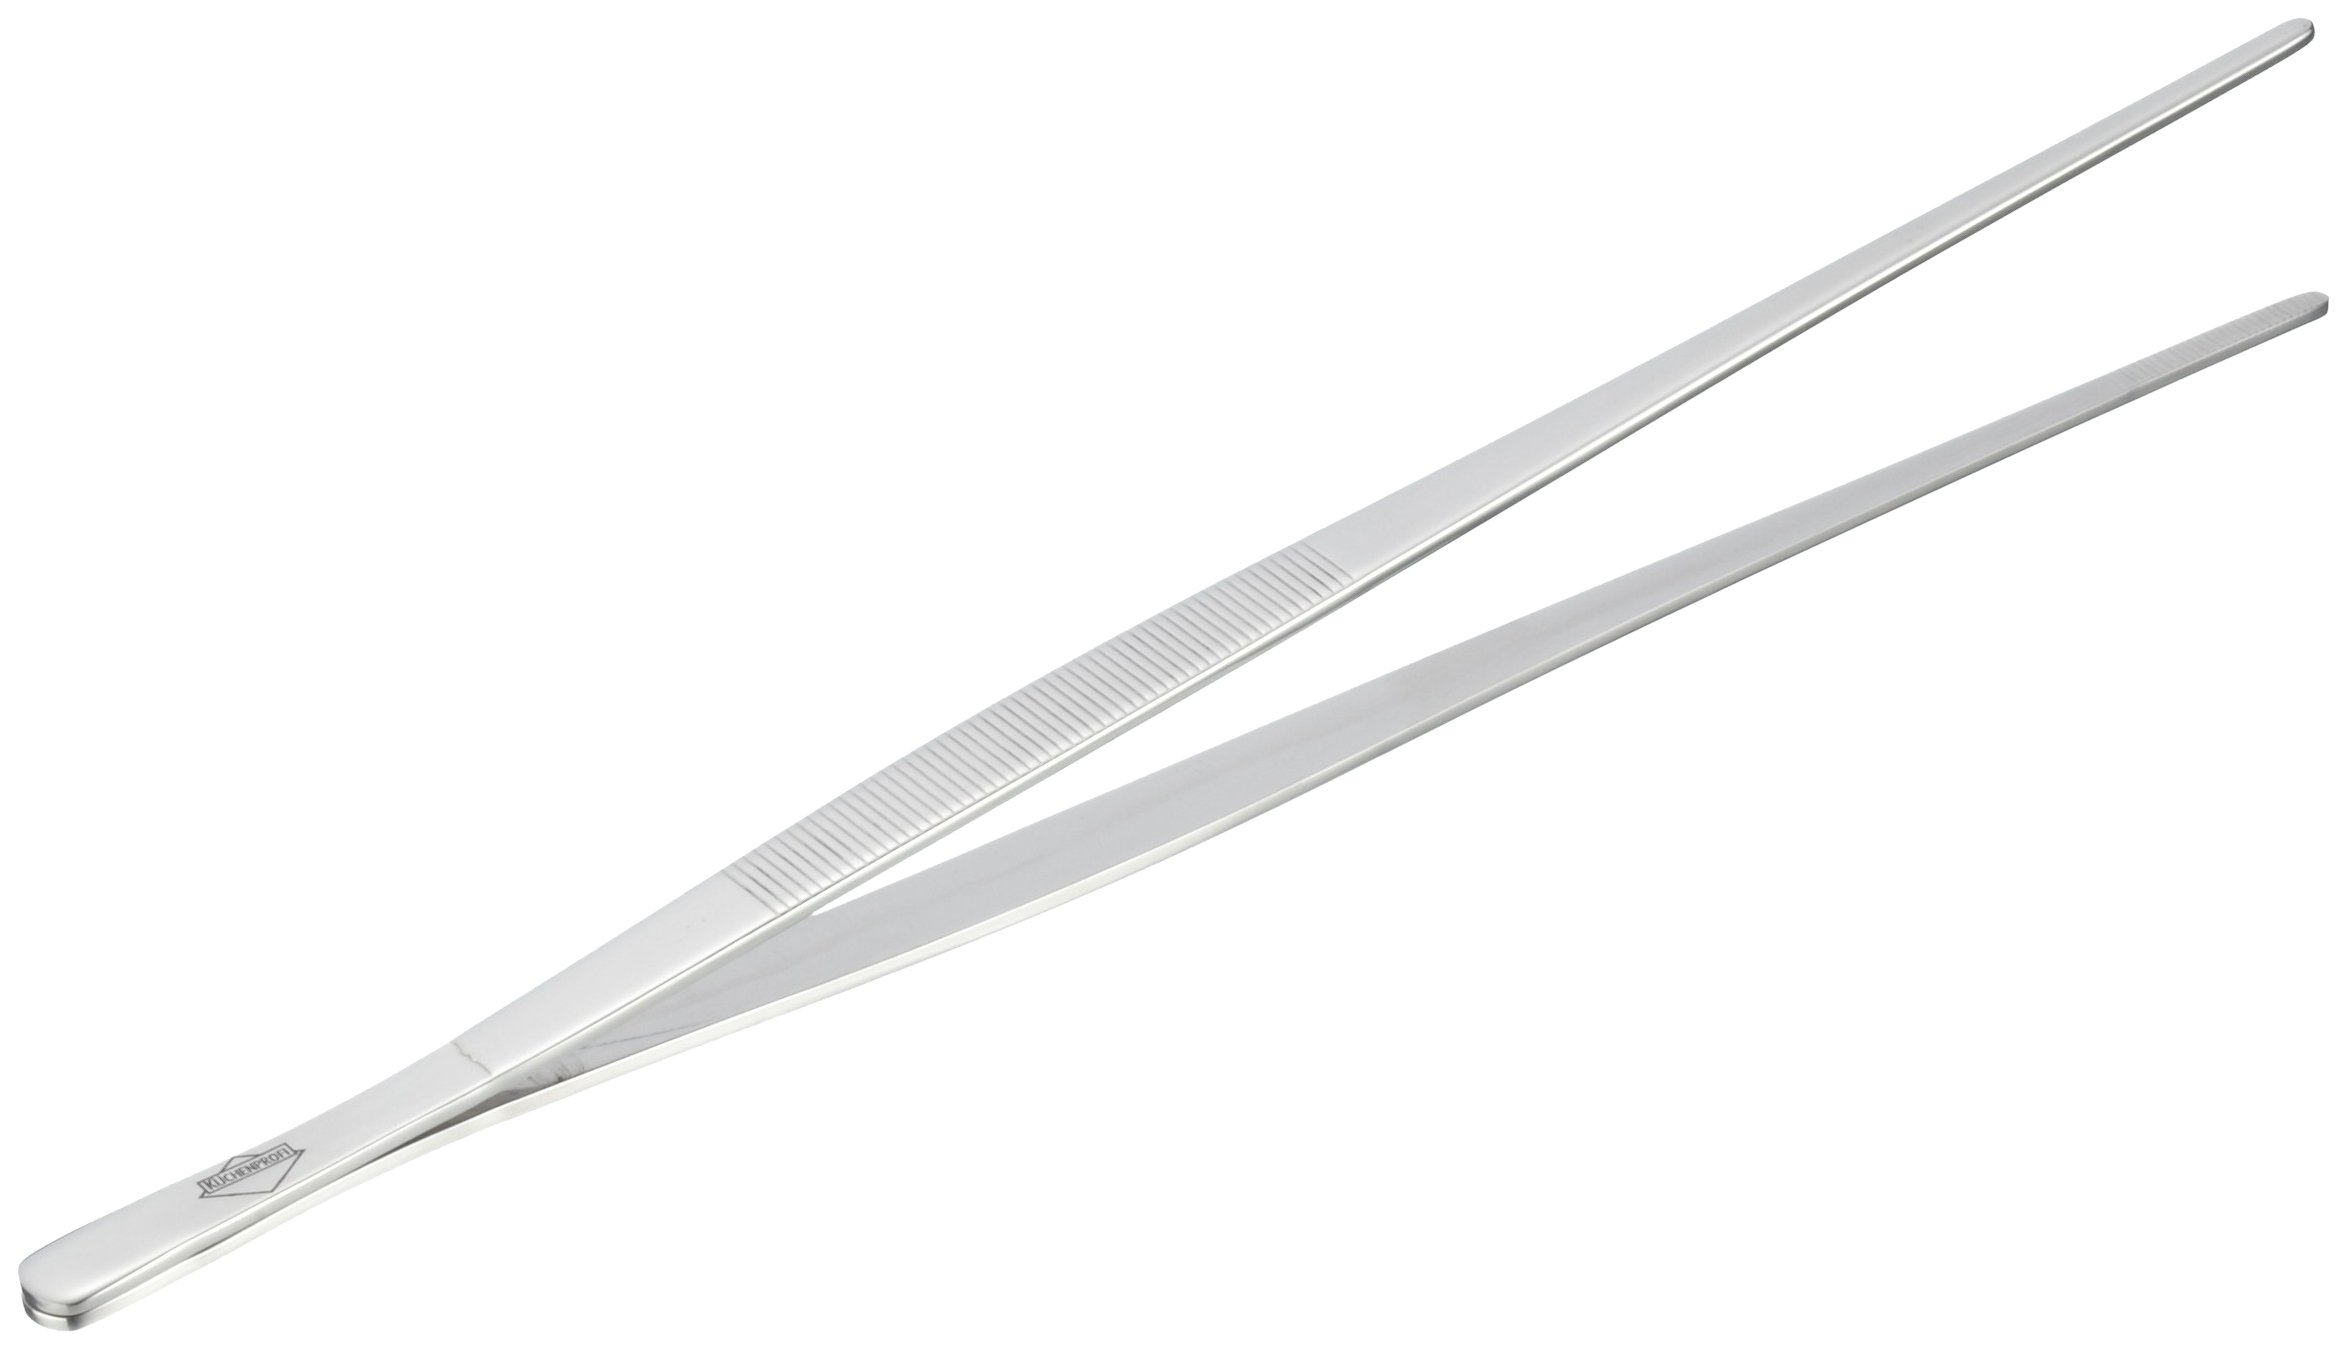 Kuchenprofi Extra-Long 12-Inch Tweezer Tongs in 18/10 Stainless Steel